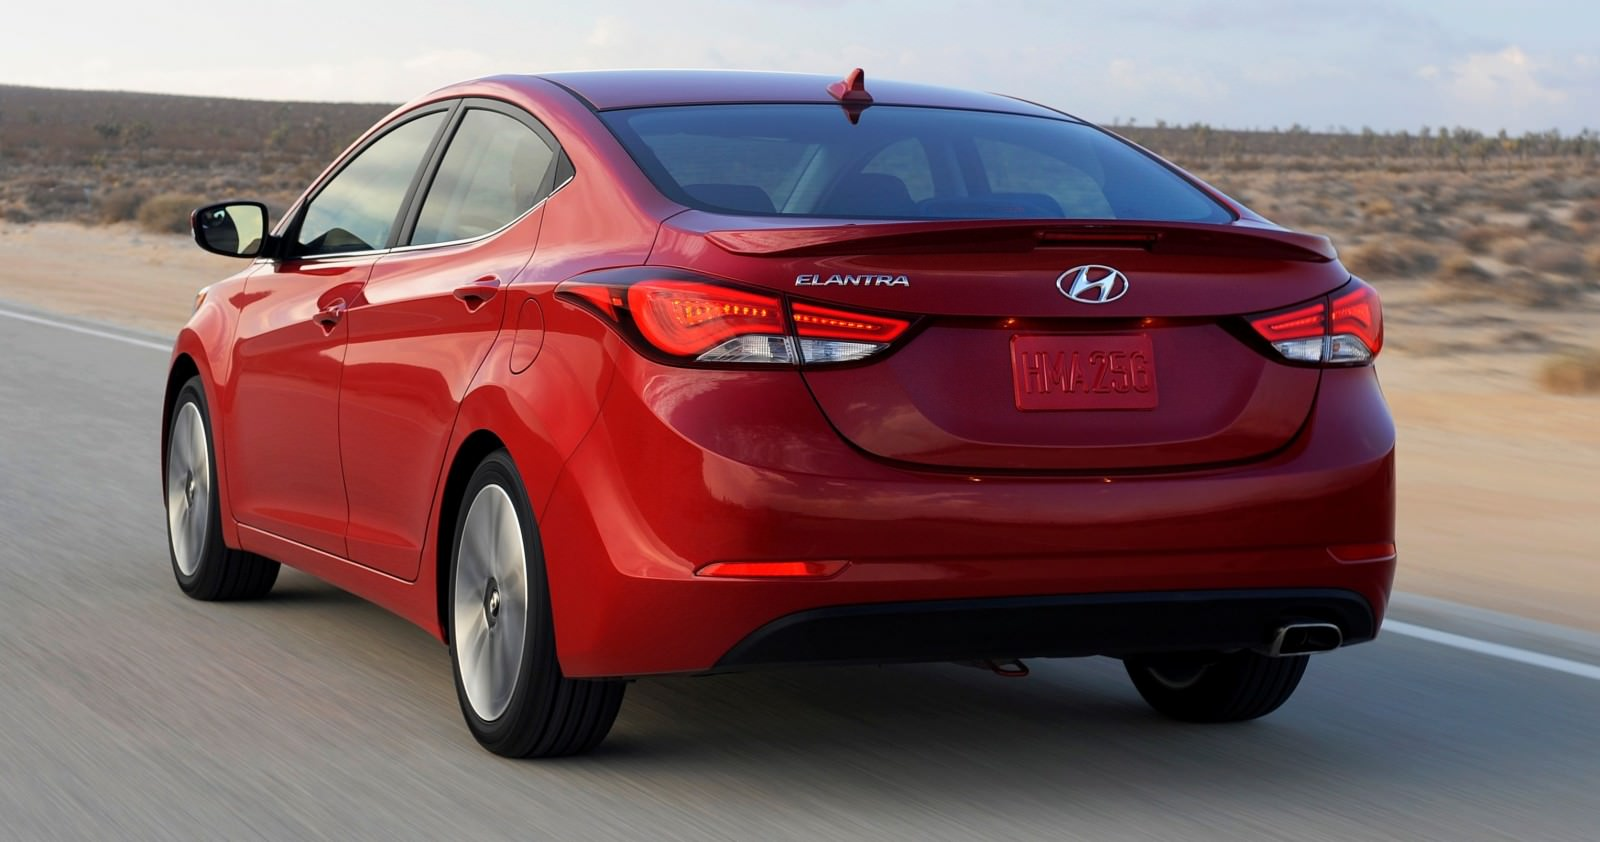 2015 Hyundai Elantra Sedan Brings Classy LED and Tech Updates  20